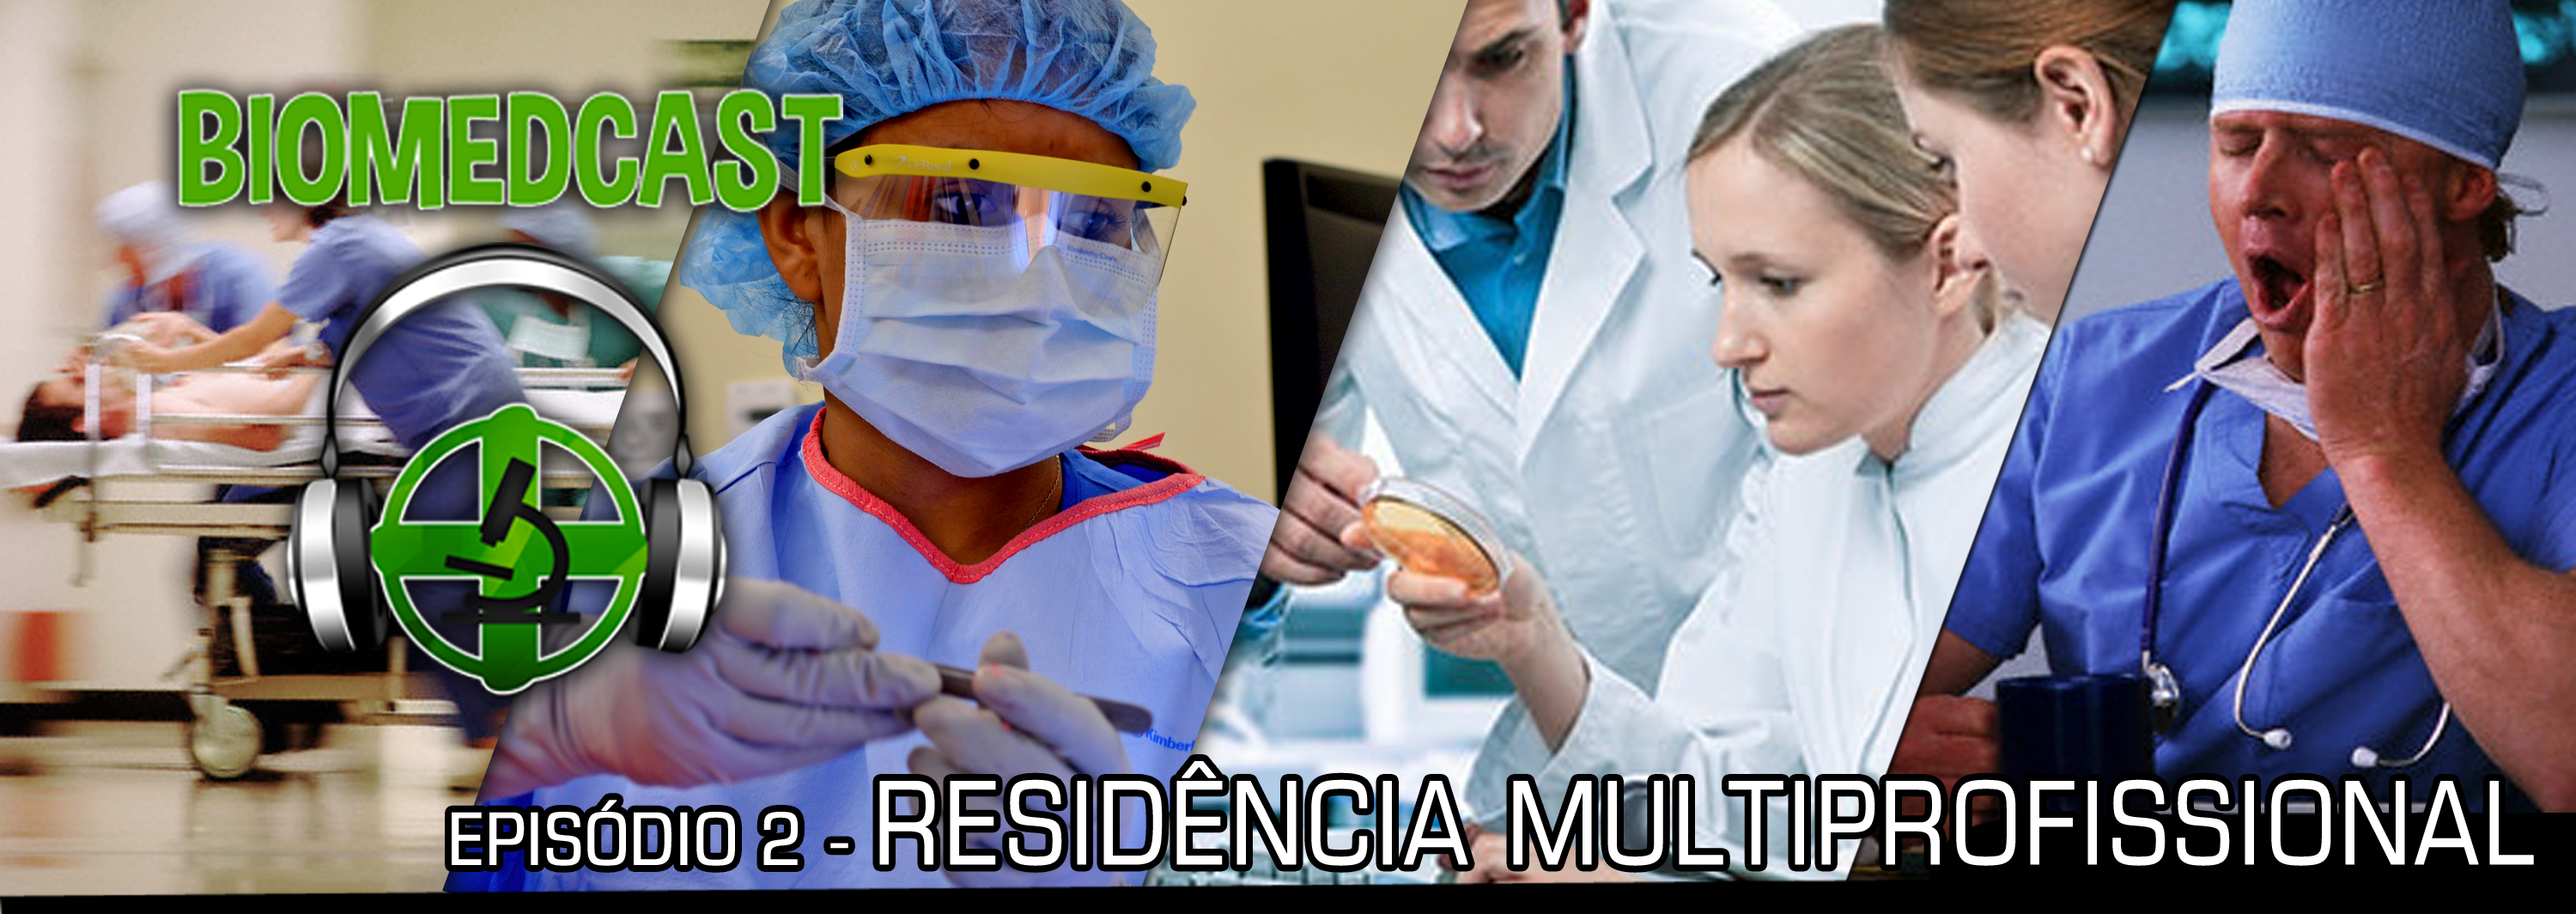 #2 Residência Multiprofissional